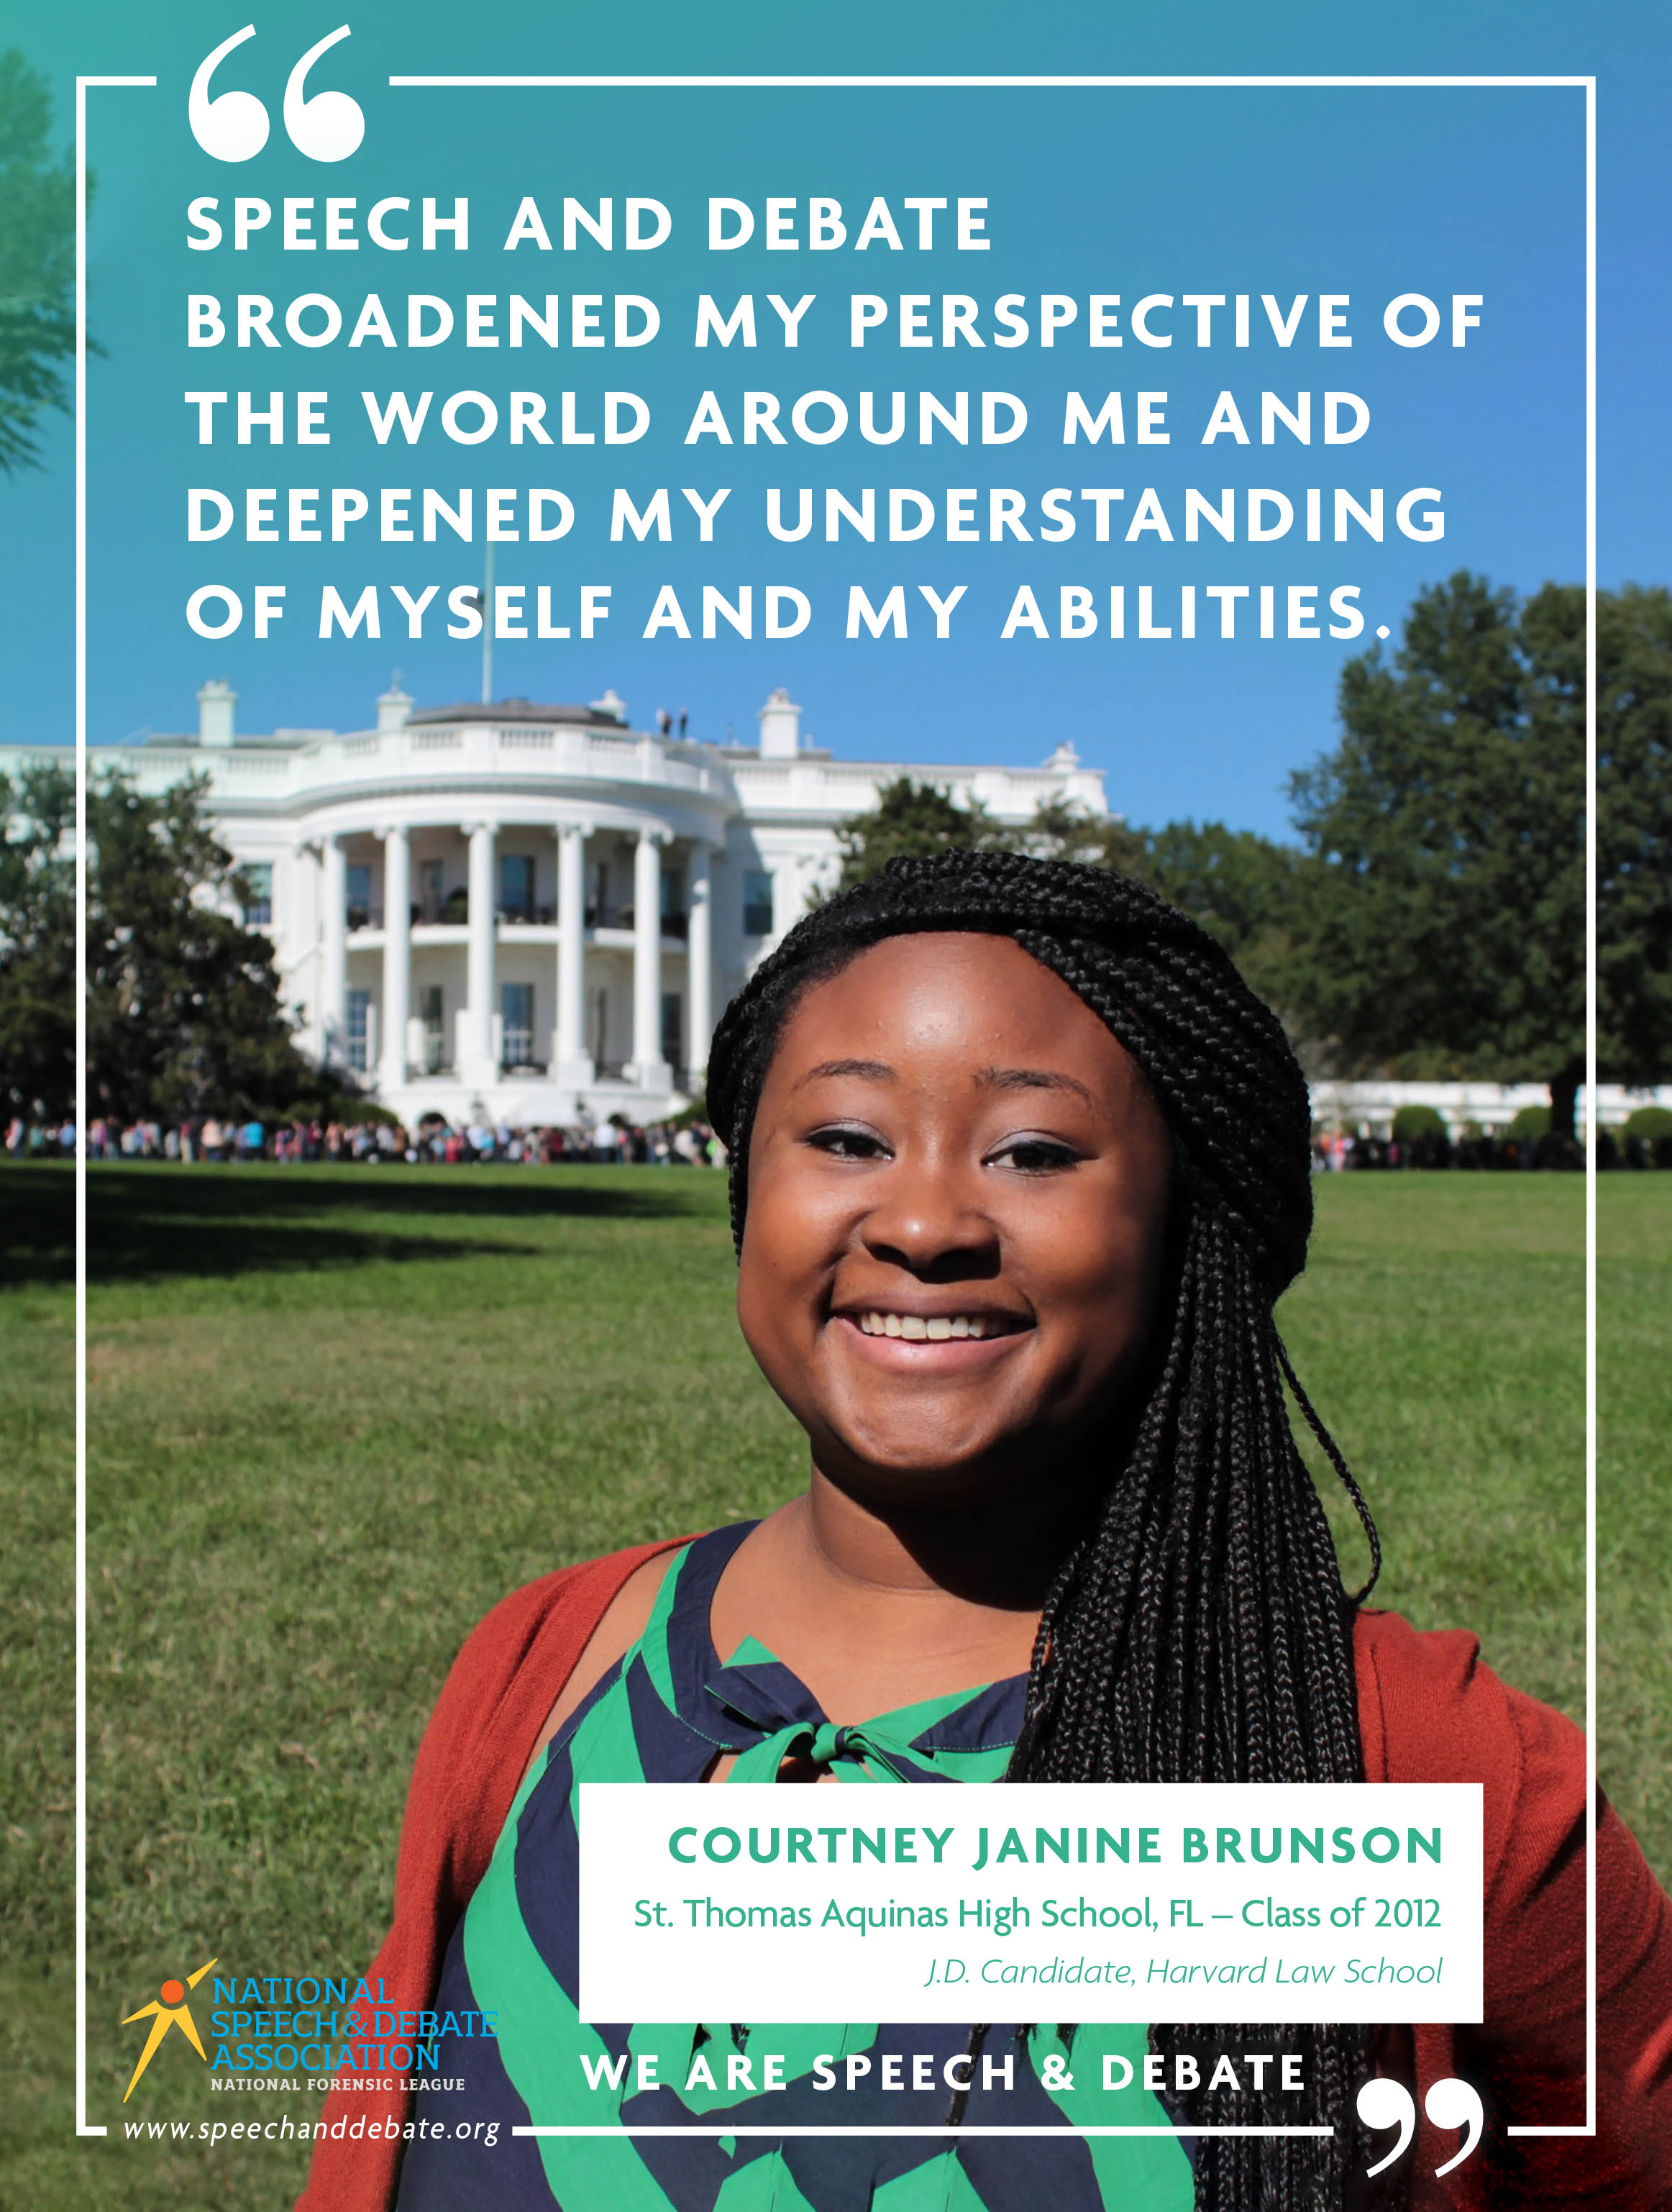 """SPEECH AND DEBATE BROADENED MY PERSPECTIVE OF THE WORLD AROUND ME AND DEEPENED MY UNDERSTANDING OF MYSELF AND MY ABILITIES."" - Courtney Janine Brunson"